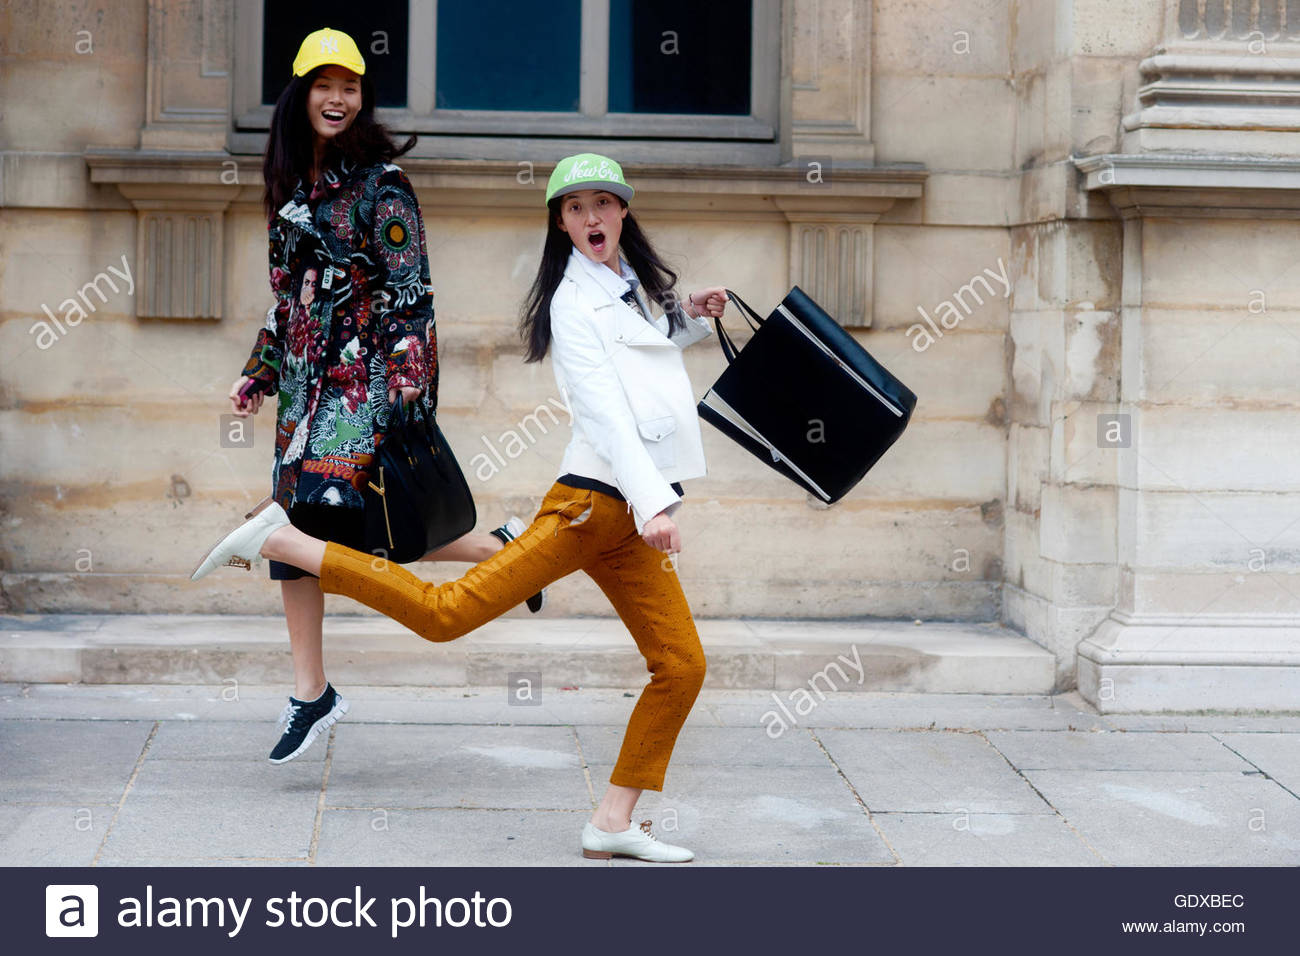 Models Tian Yi and Lina Zhang after the Louis Vuitton ready to wear Fashion Show at the Louvre Palace, Paris. - Stock Image